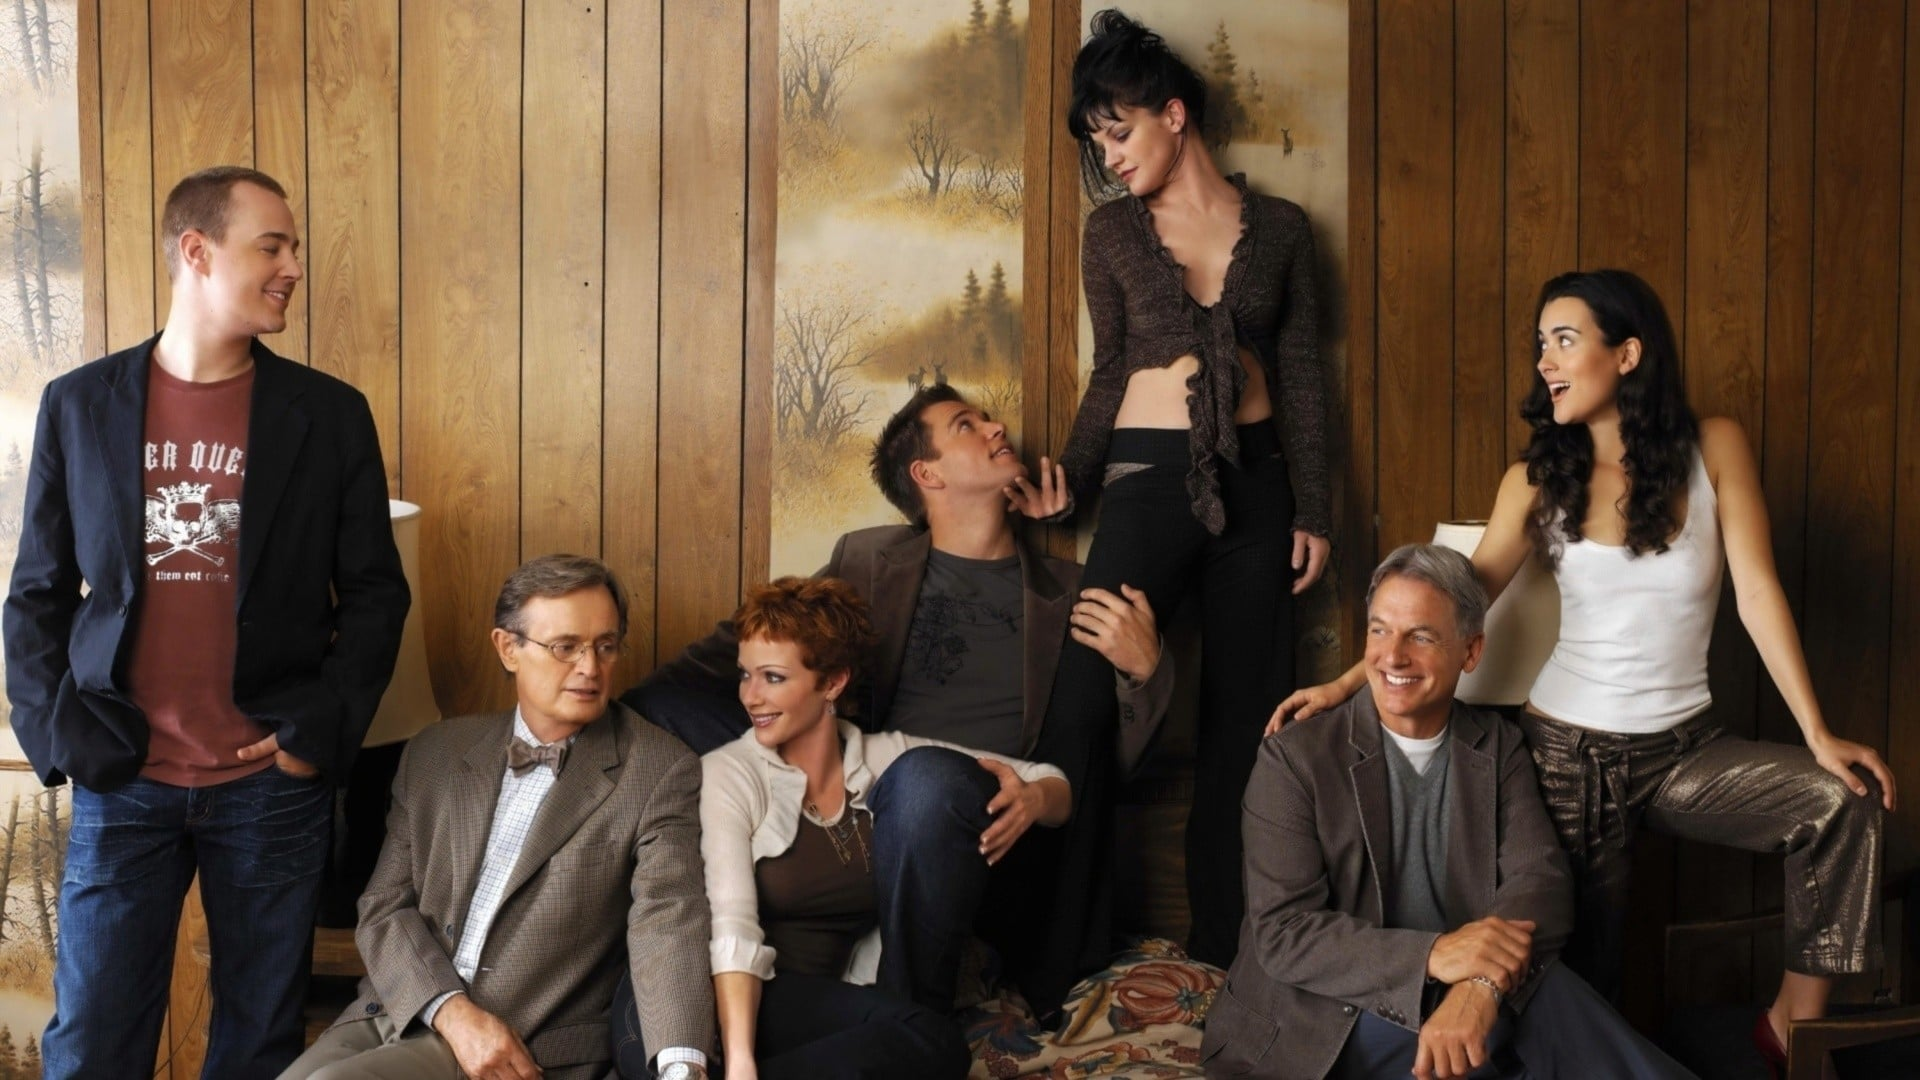 NCIS - Season 0 Episode 23 : Behind the Set: The Production Design of NCIS